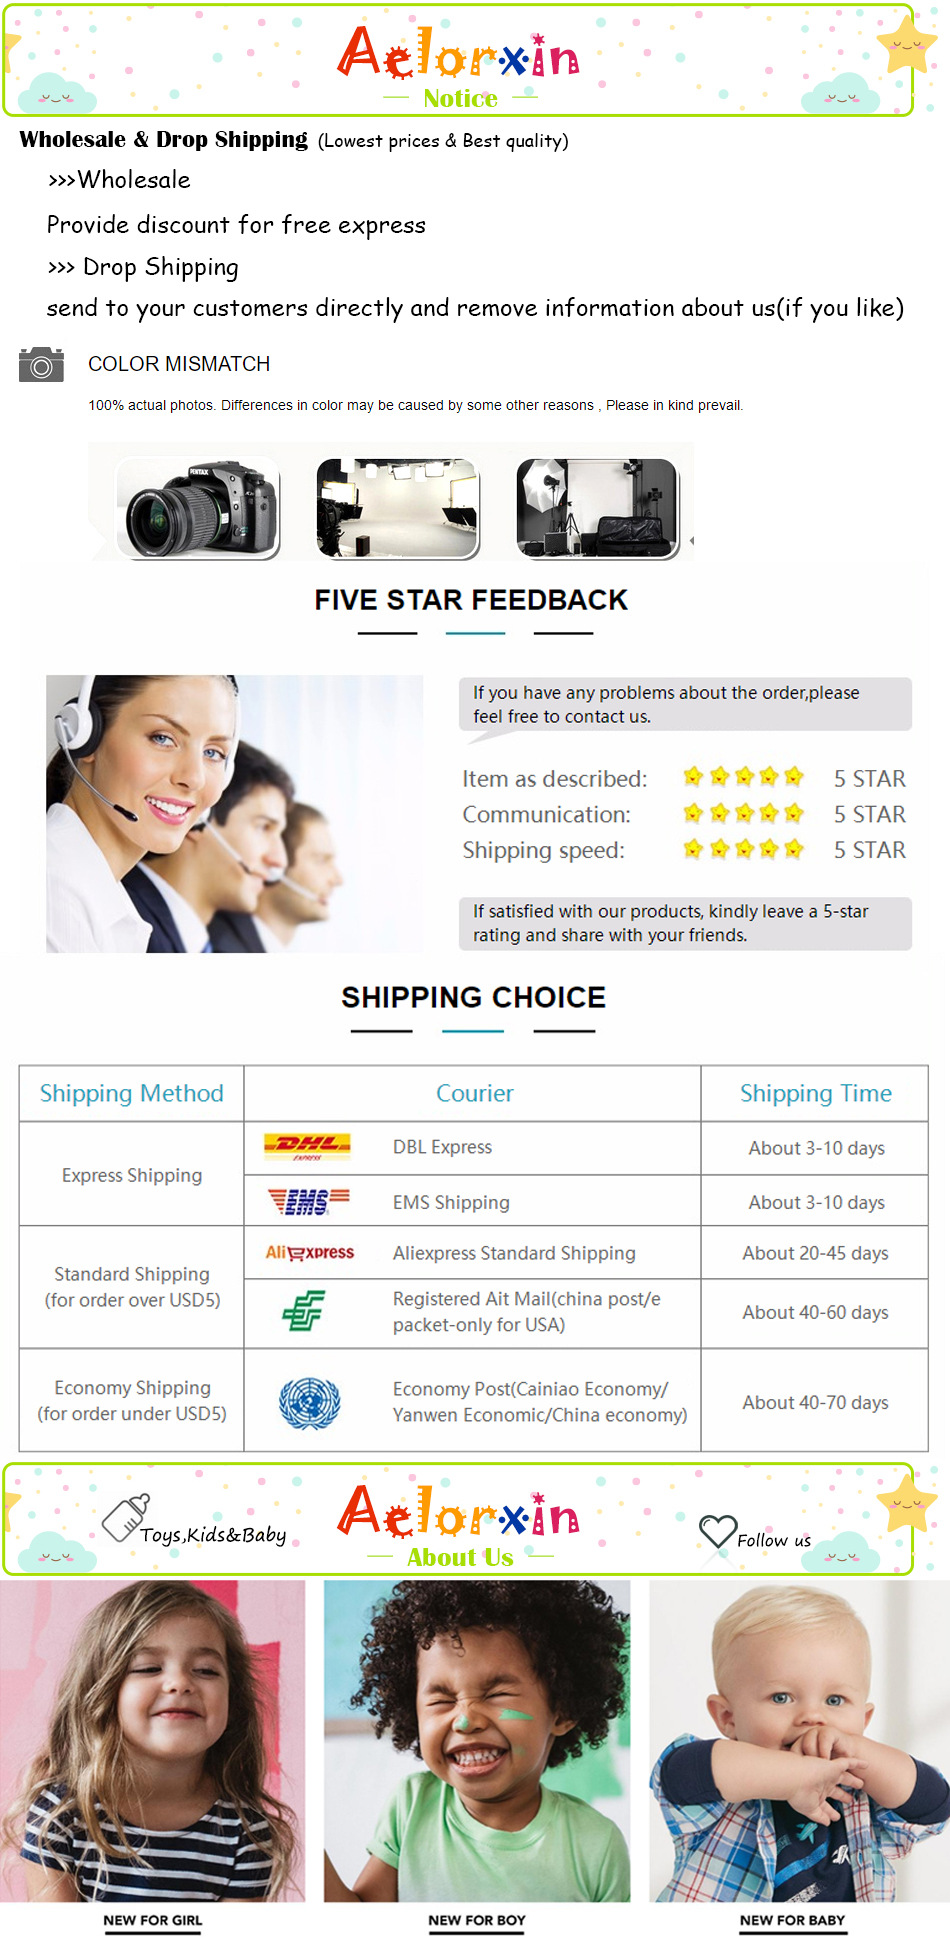 Lowest price & best quality, more surprises click here!!!